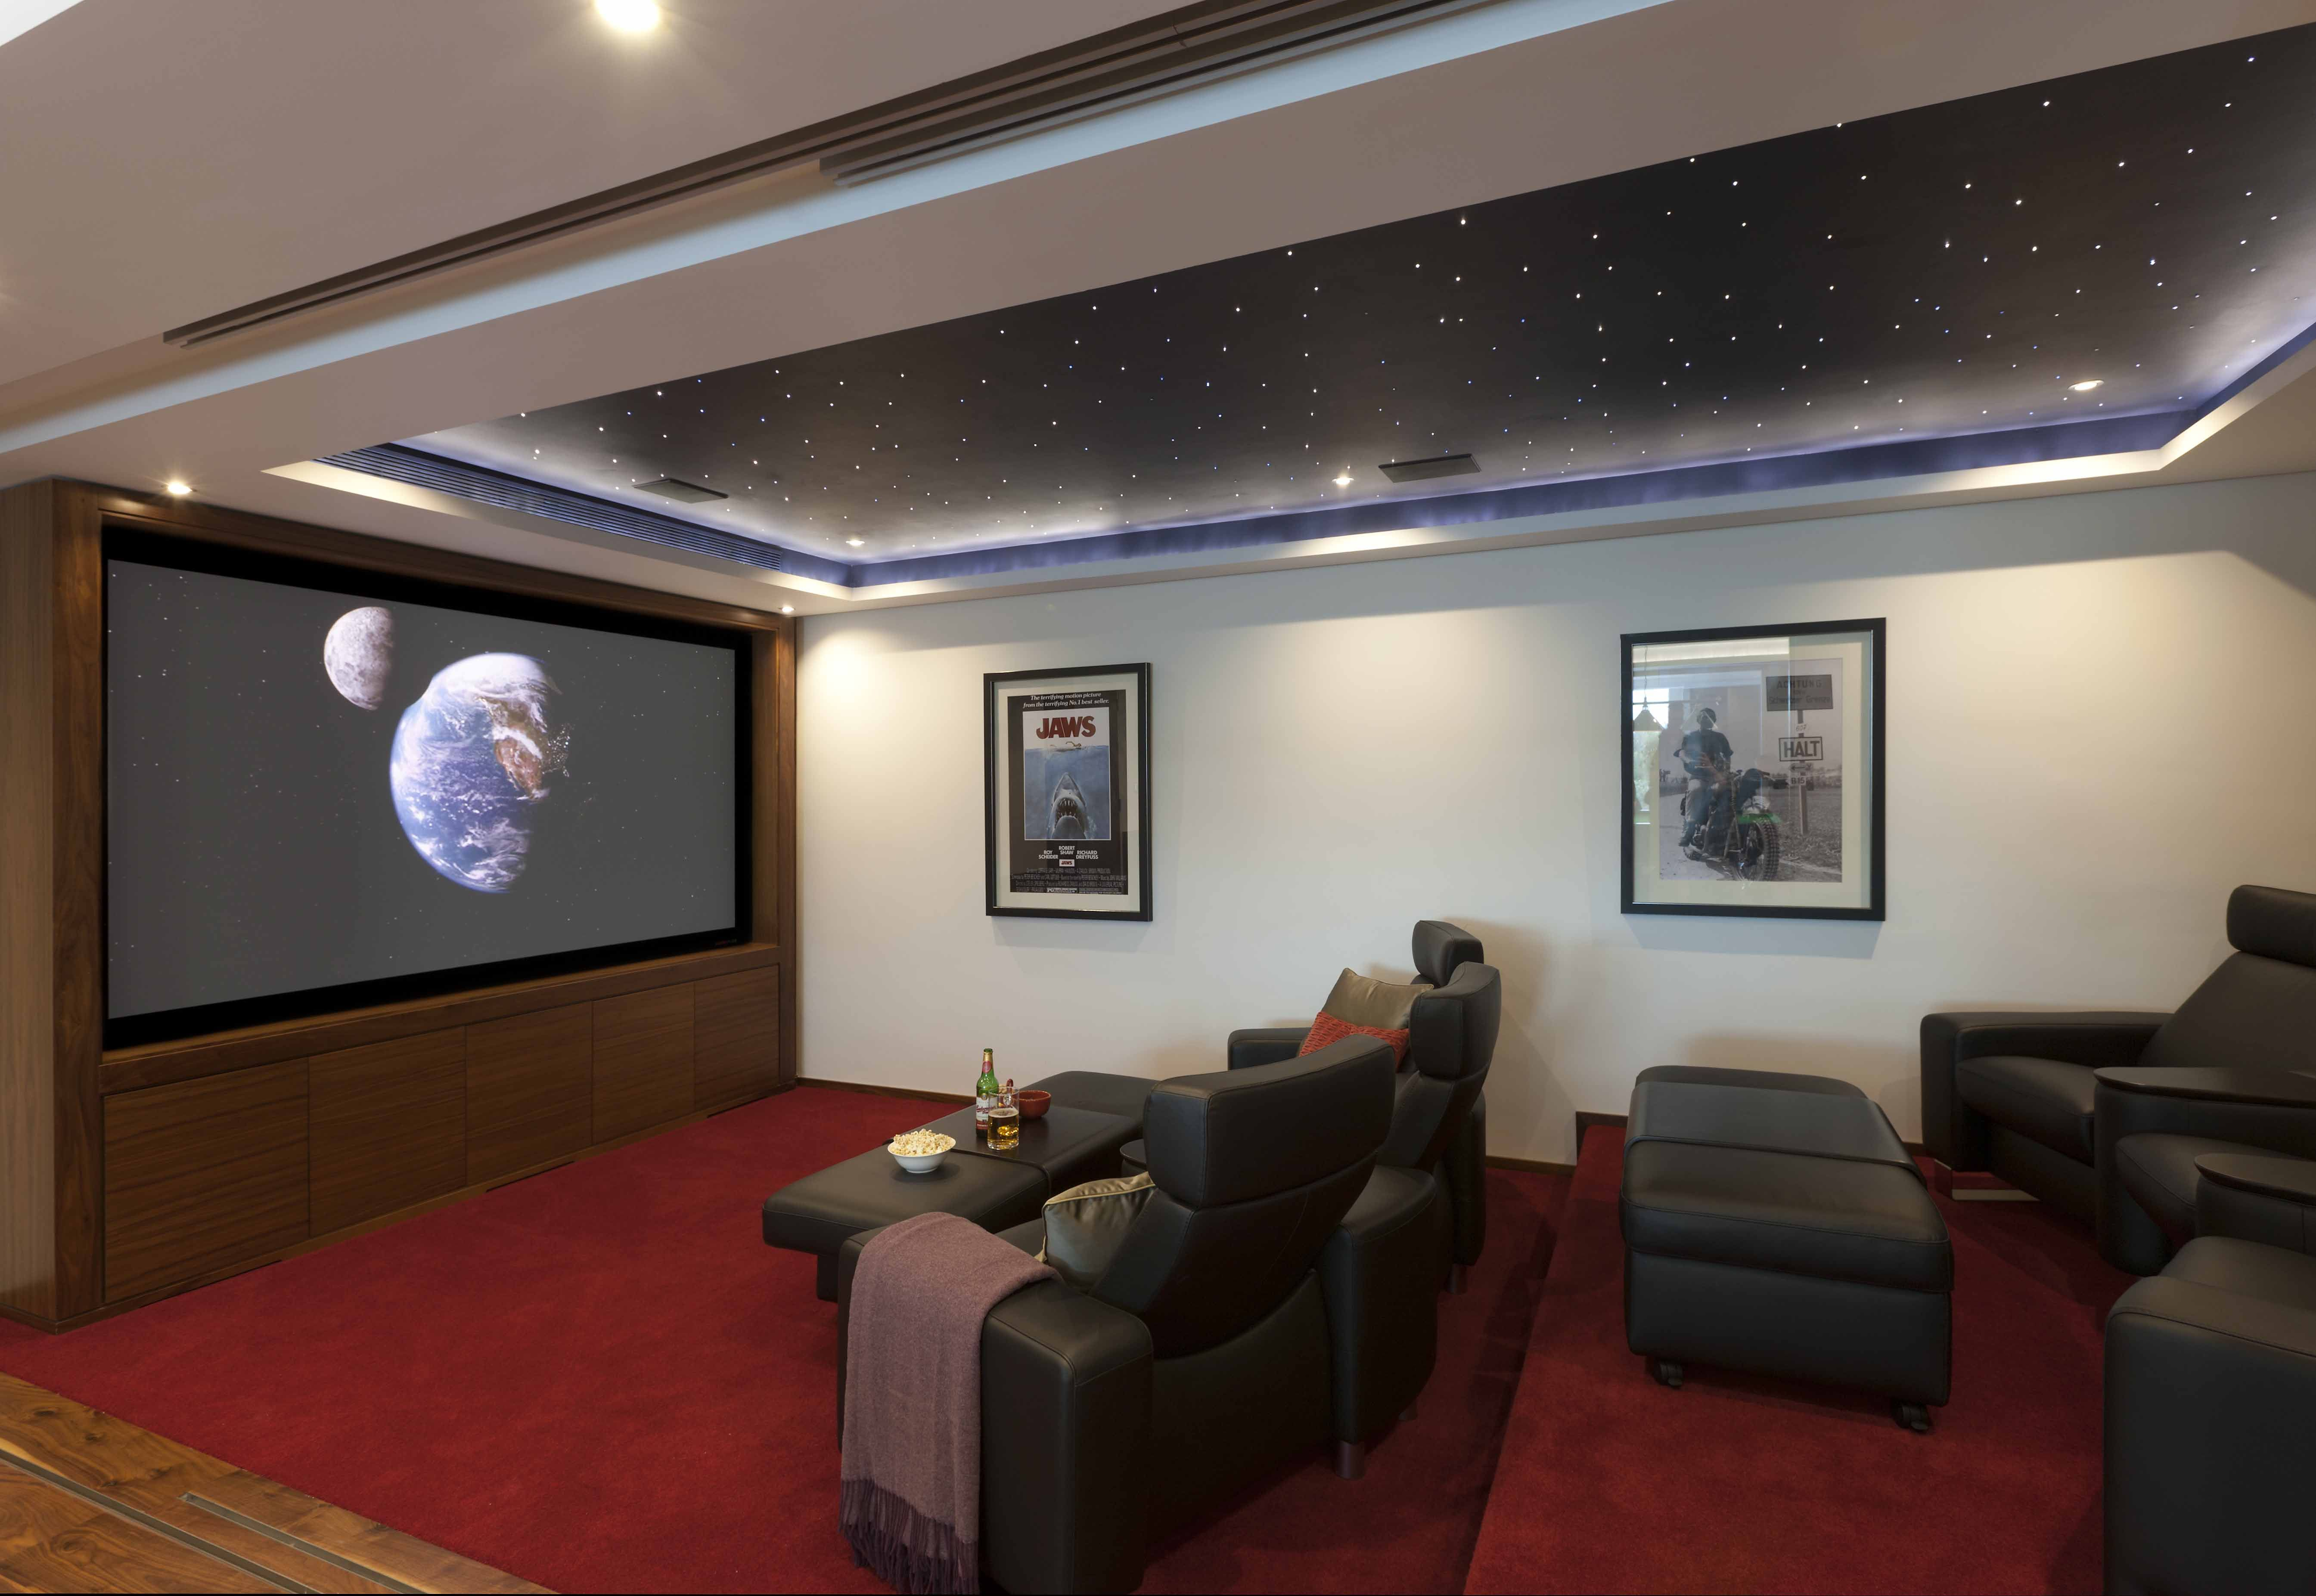 A Custom Made Home Cinema By Tillman Domotics With A 3 Metre